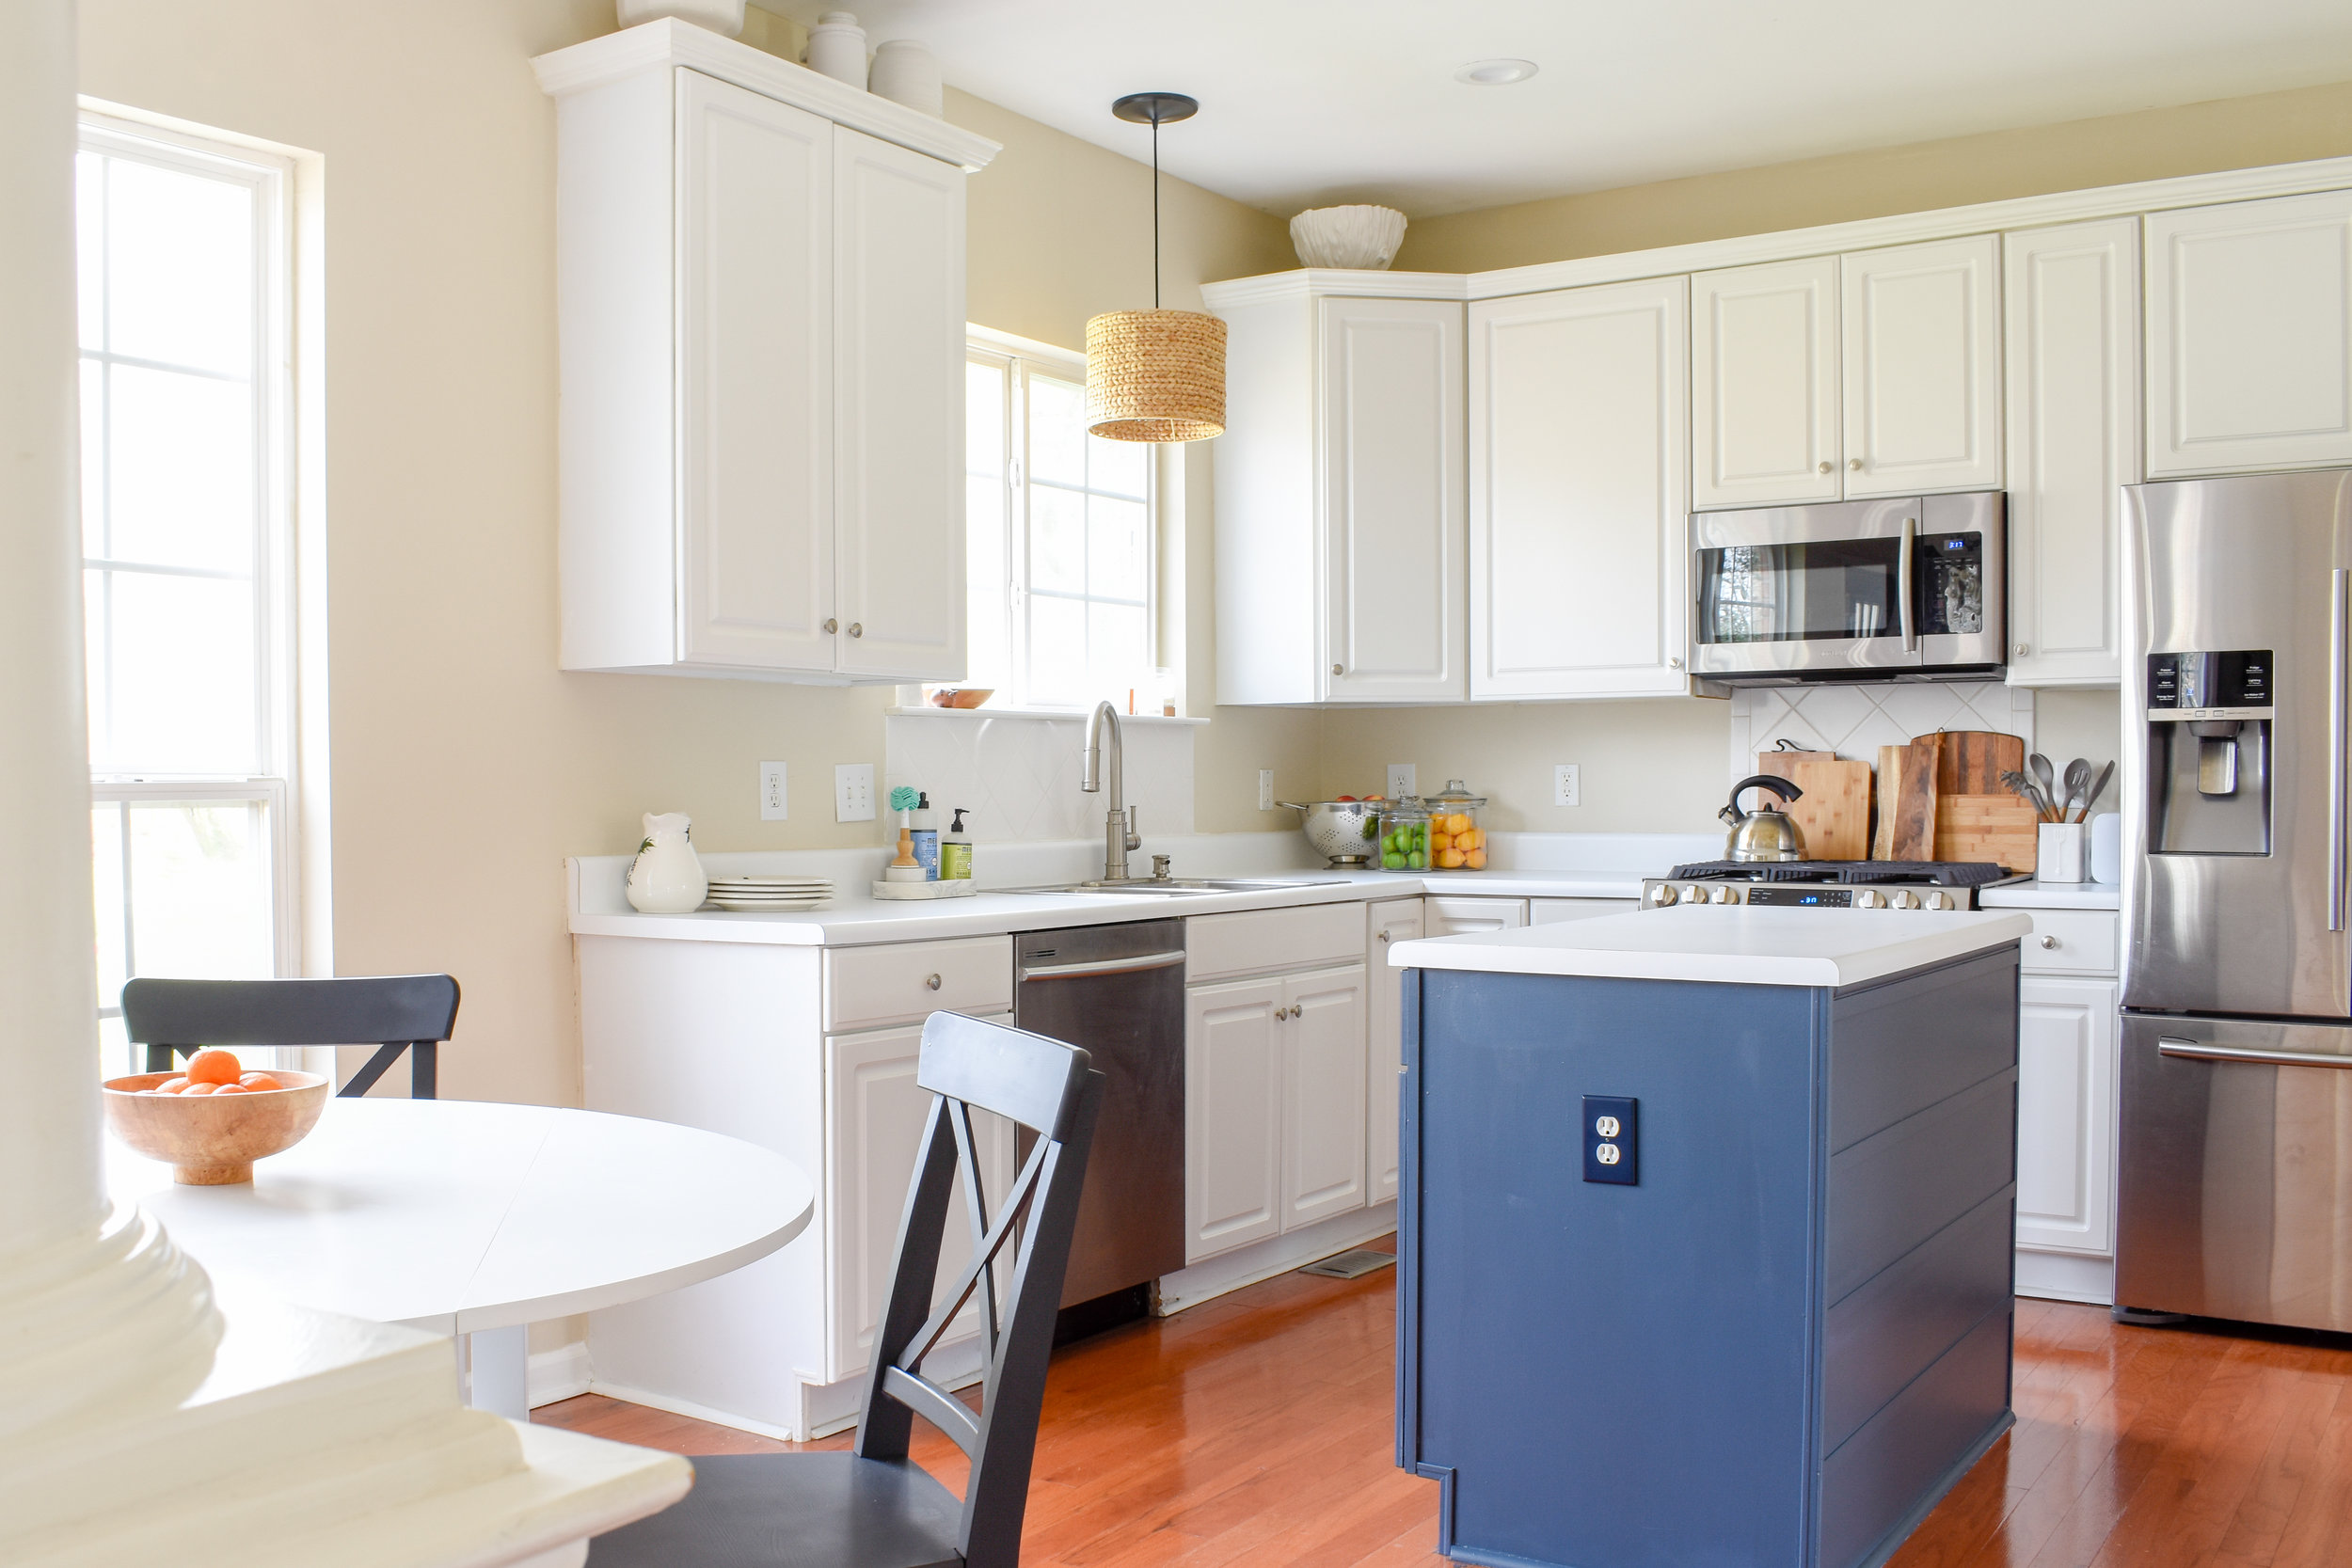 What can you do with $5,000 when renovating a kitchen? A lot.